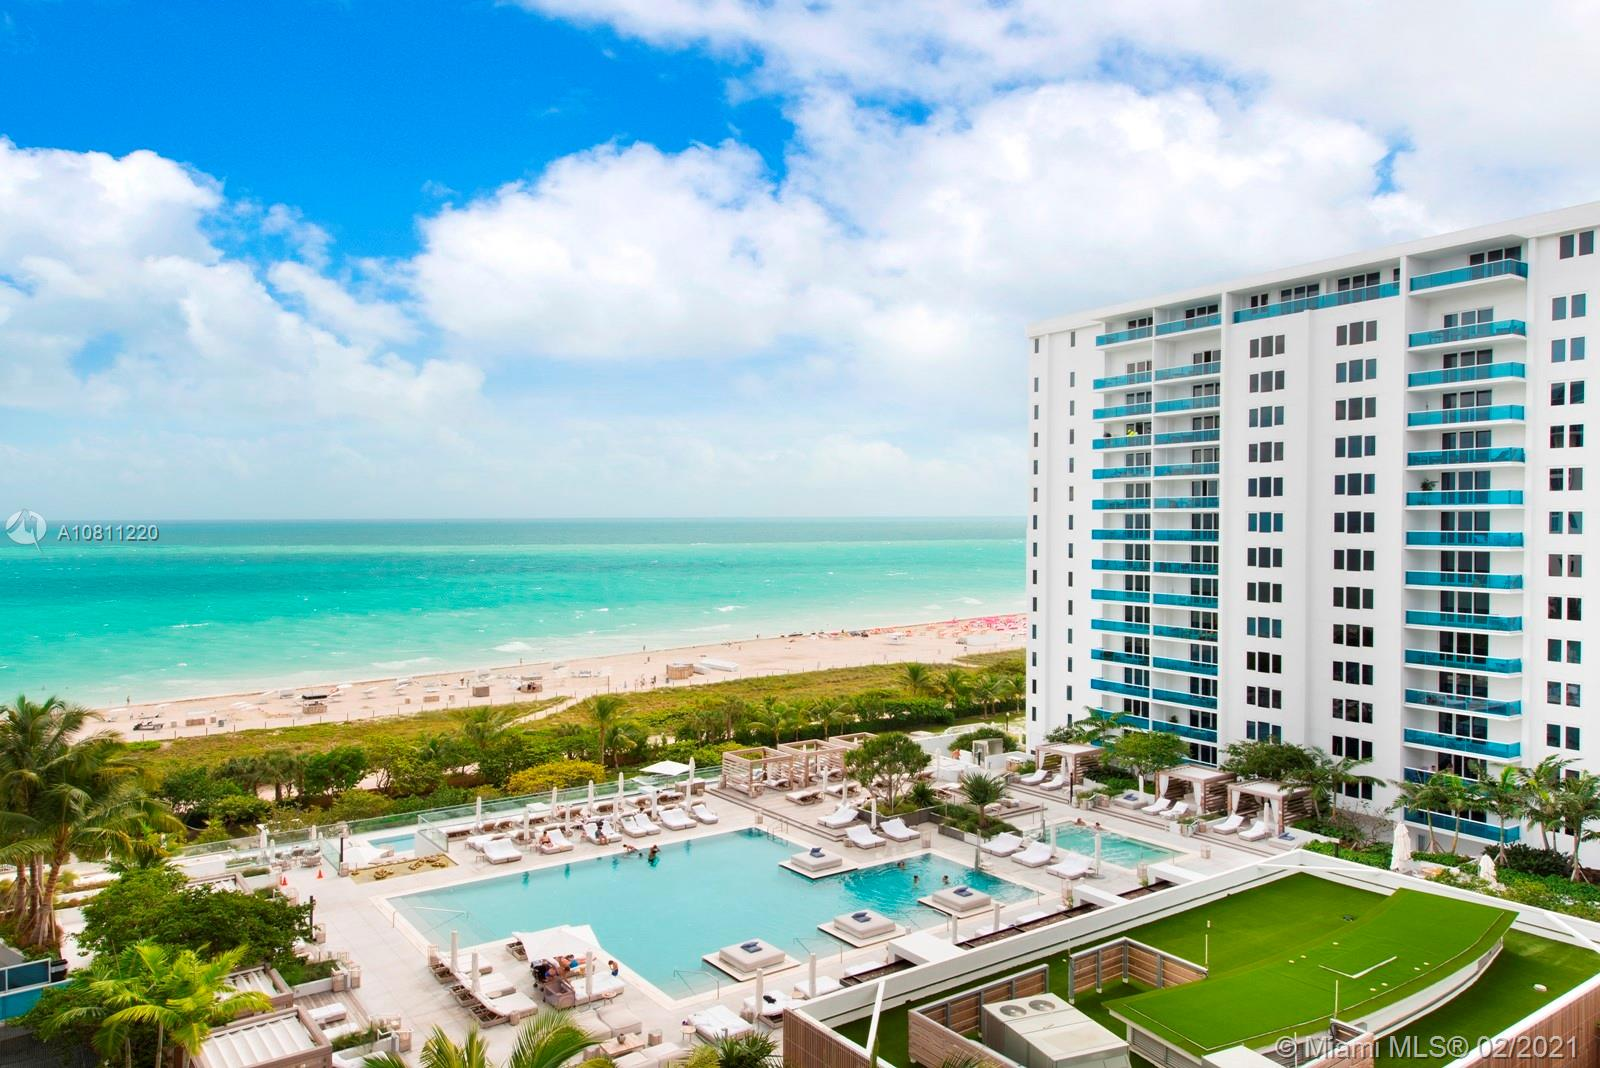 1 Hotel & Homes #912 - 102 24th St #912, Miami Beach, FL 33139